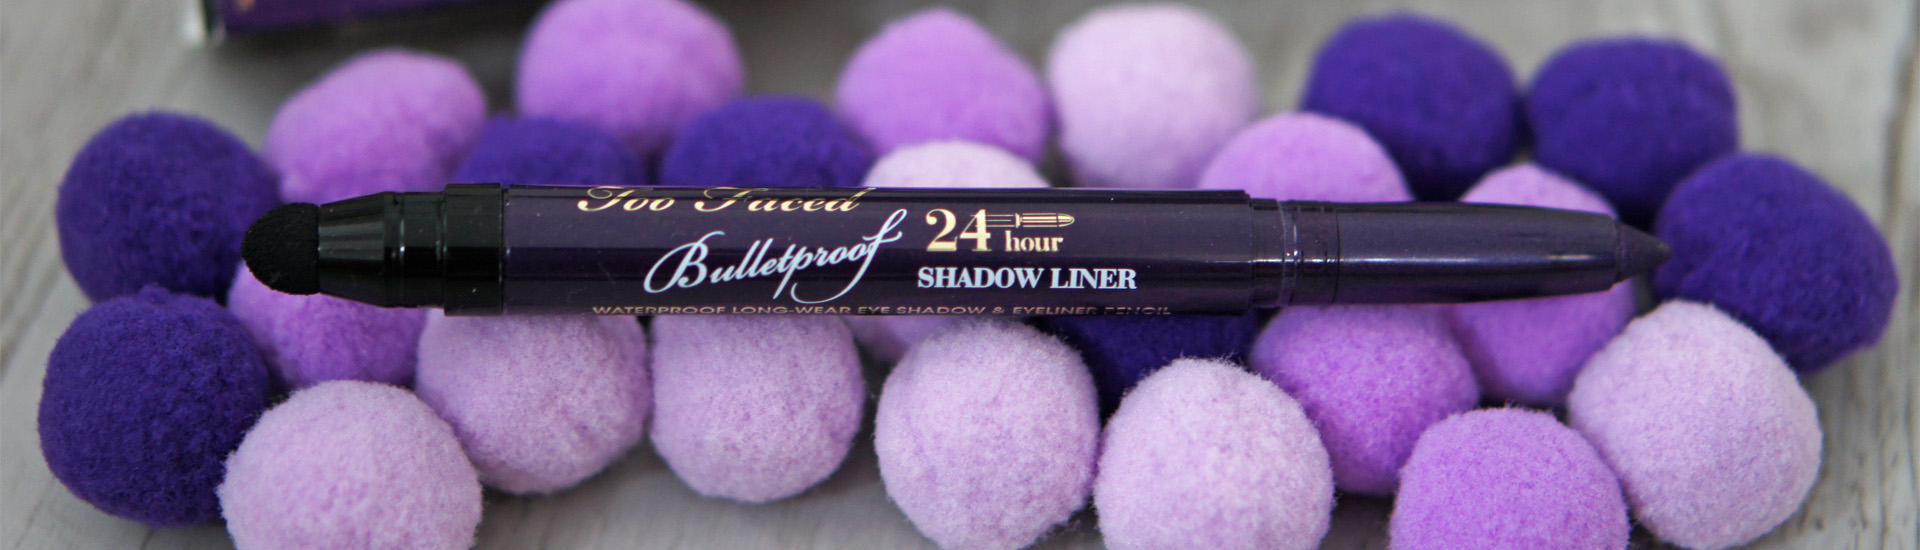 Too Faced Bulletproof 24 Hour Shadow Liner